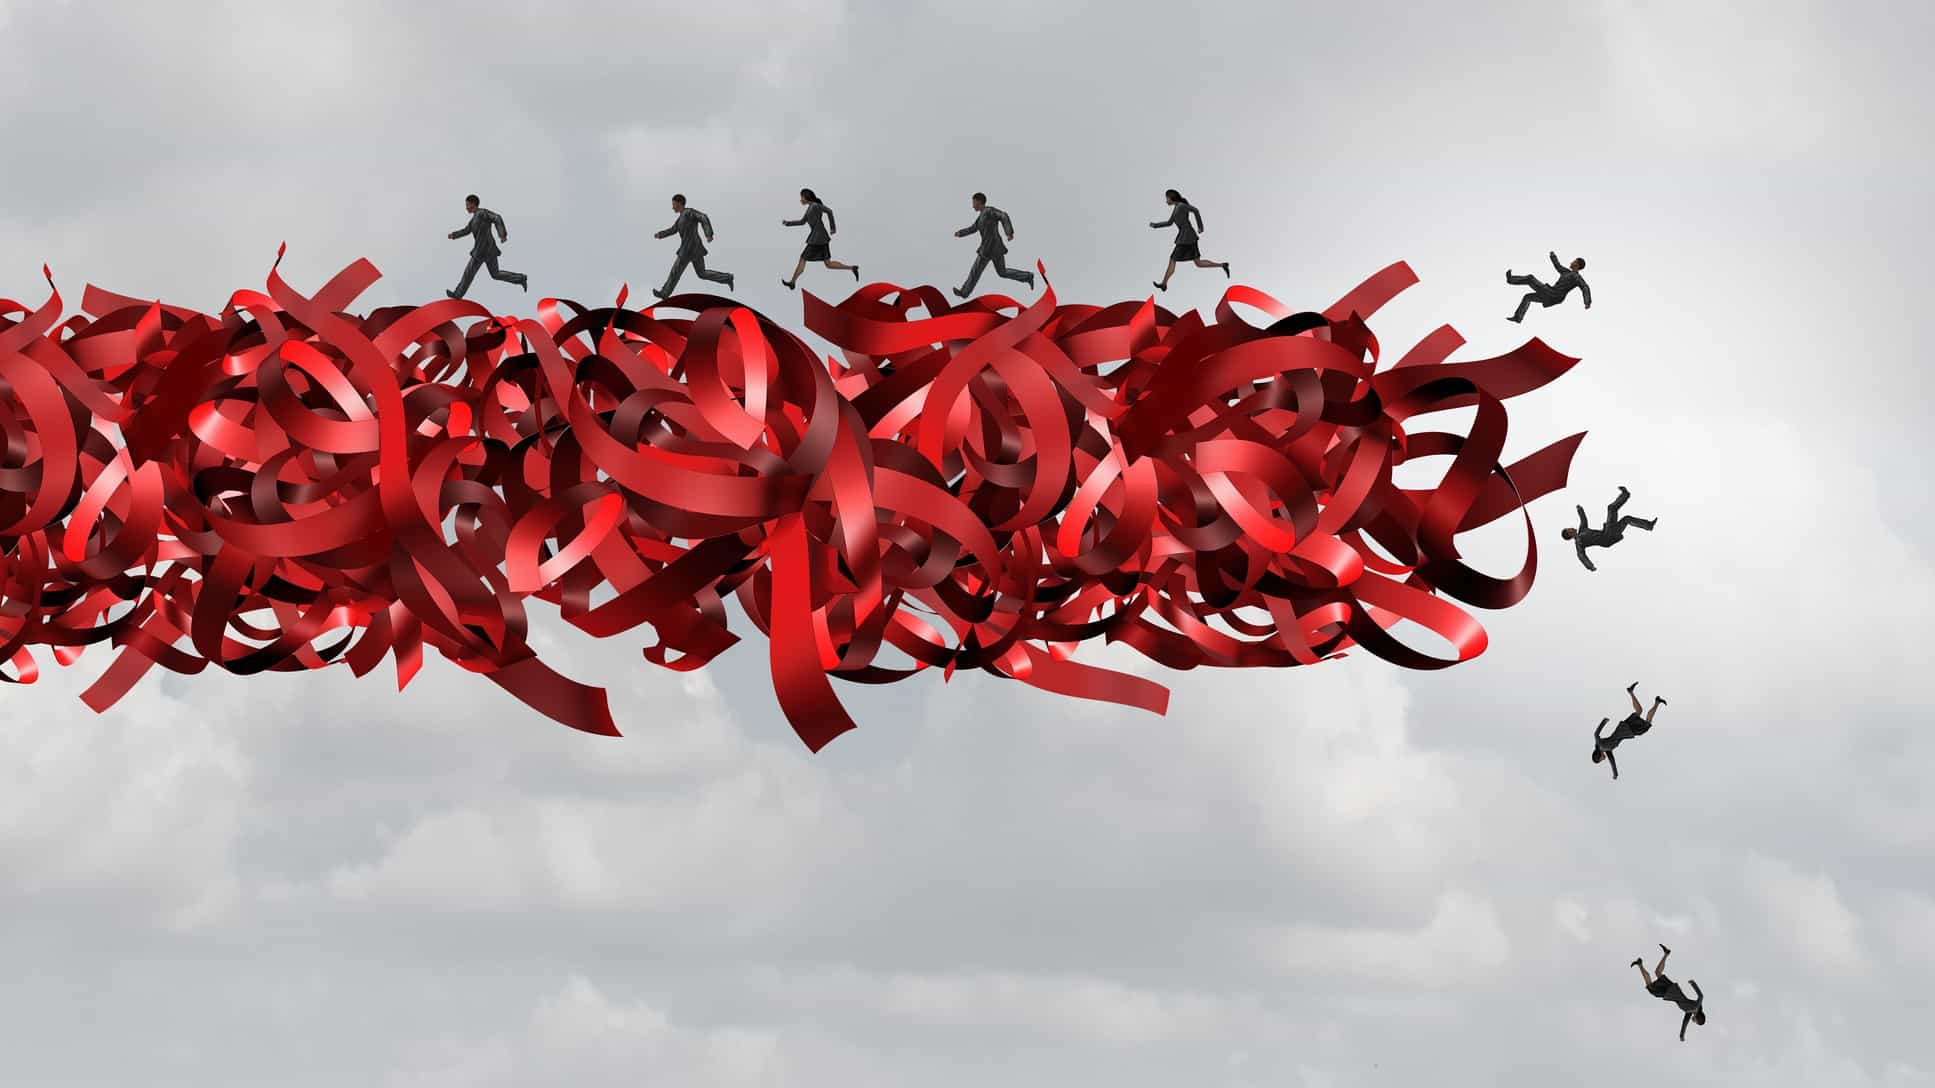 Tangled red tape in mid air with small figures falling off it